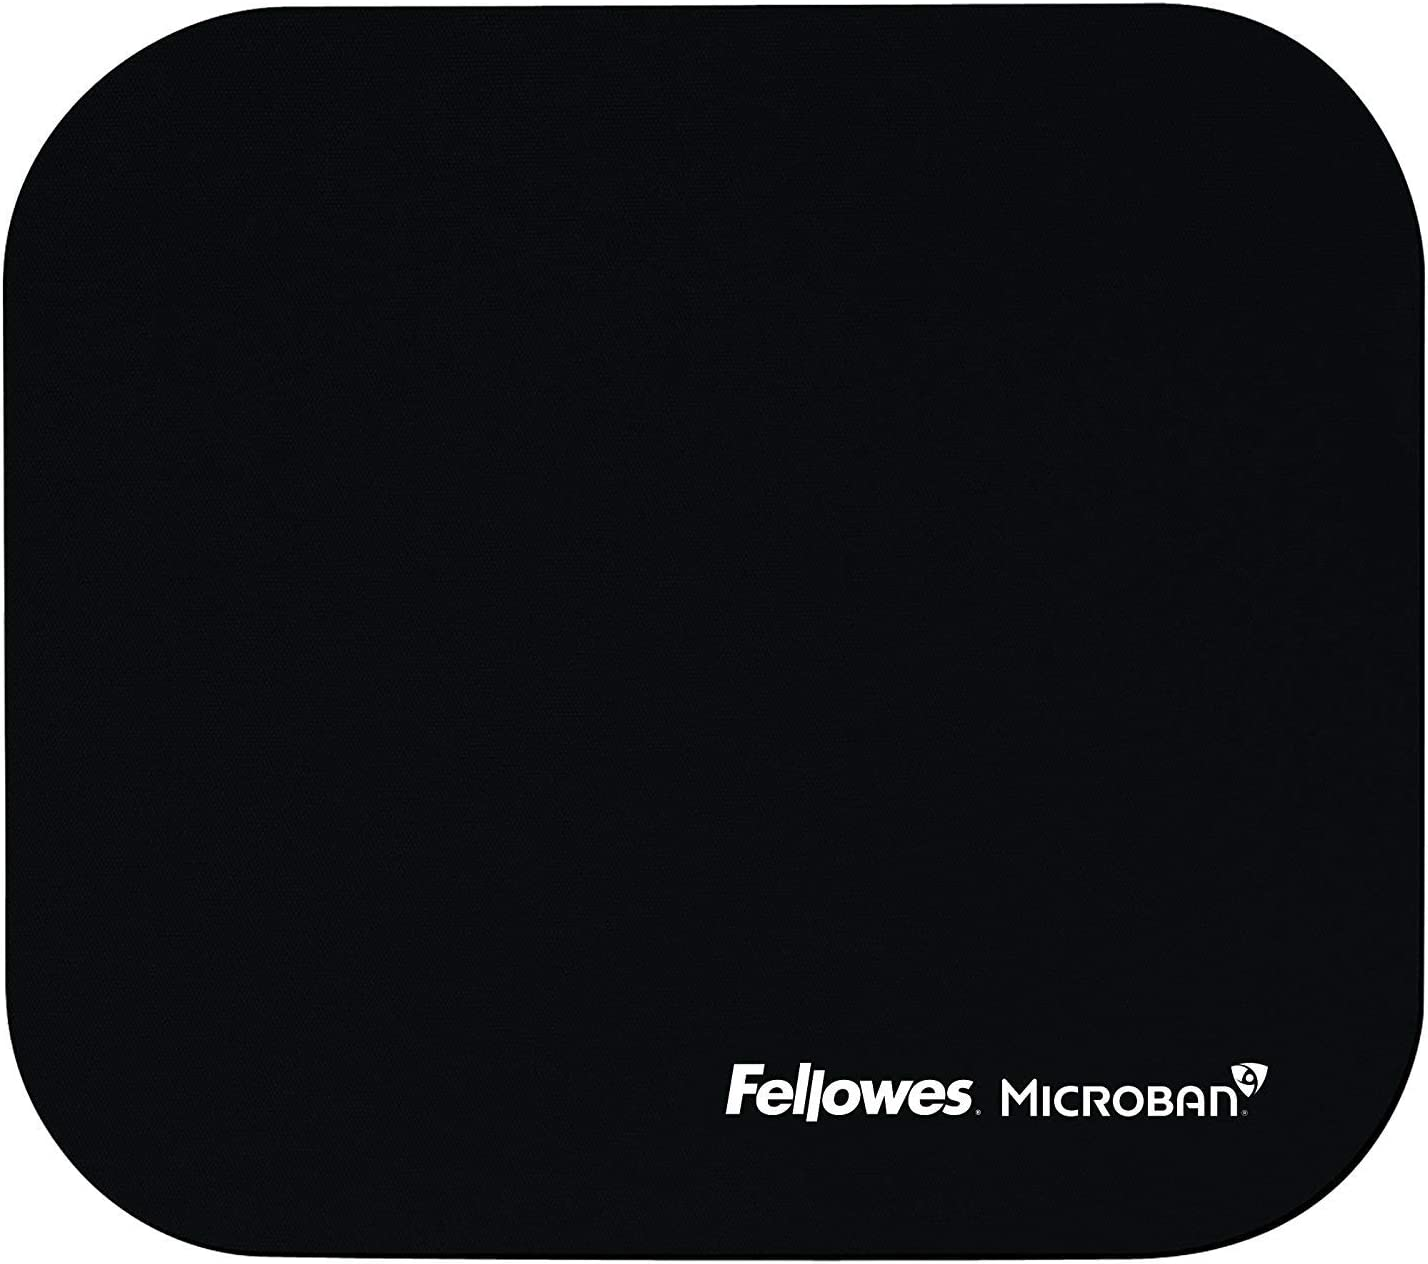 Mouse Pad with Microban Pack of 18 Black 5933901